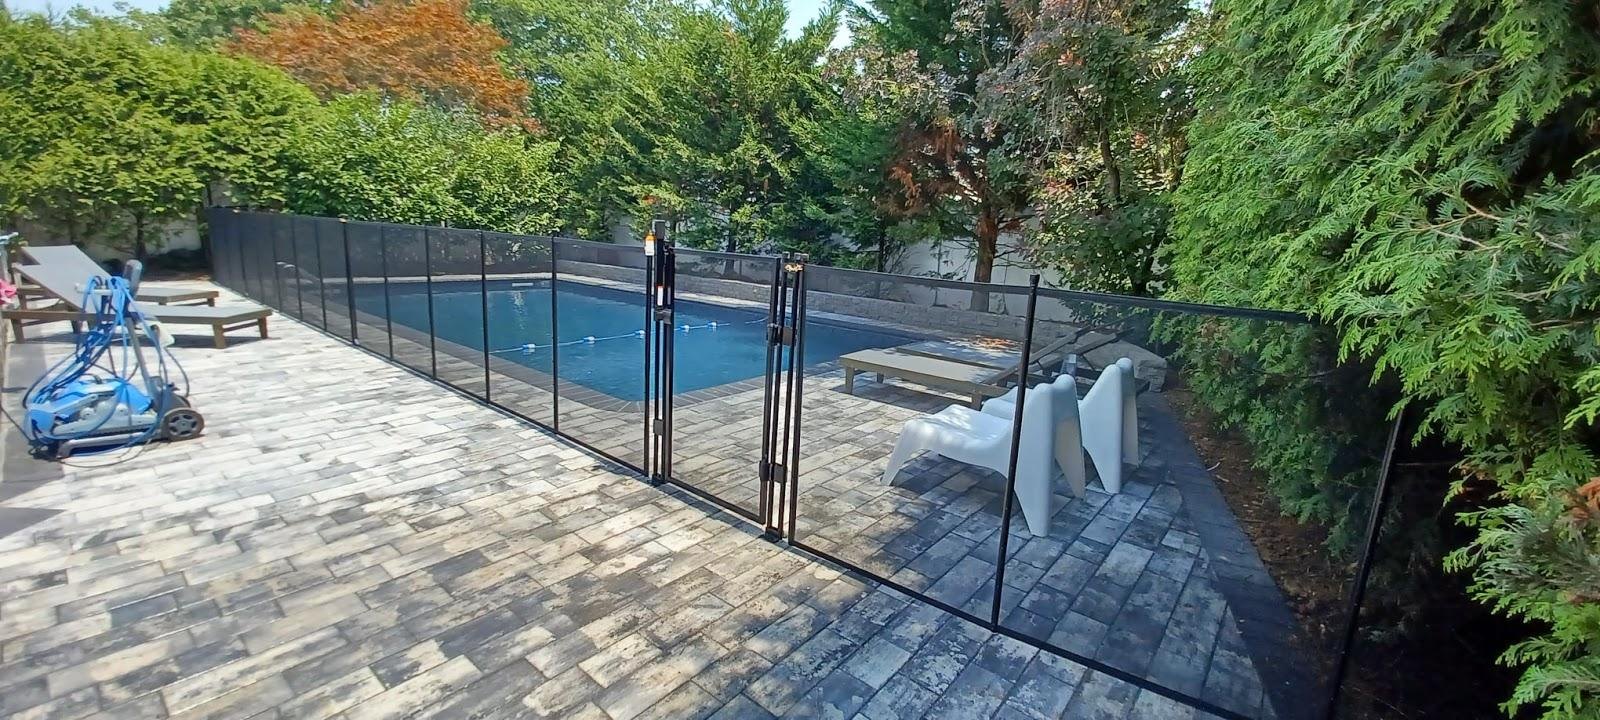 A mesh BABY-LOC fence is installed around an inground pool with a deck.